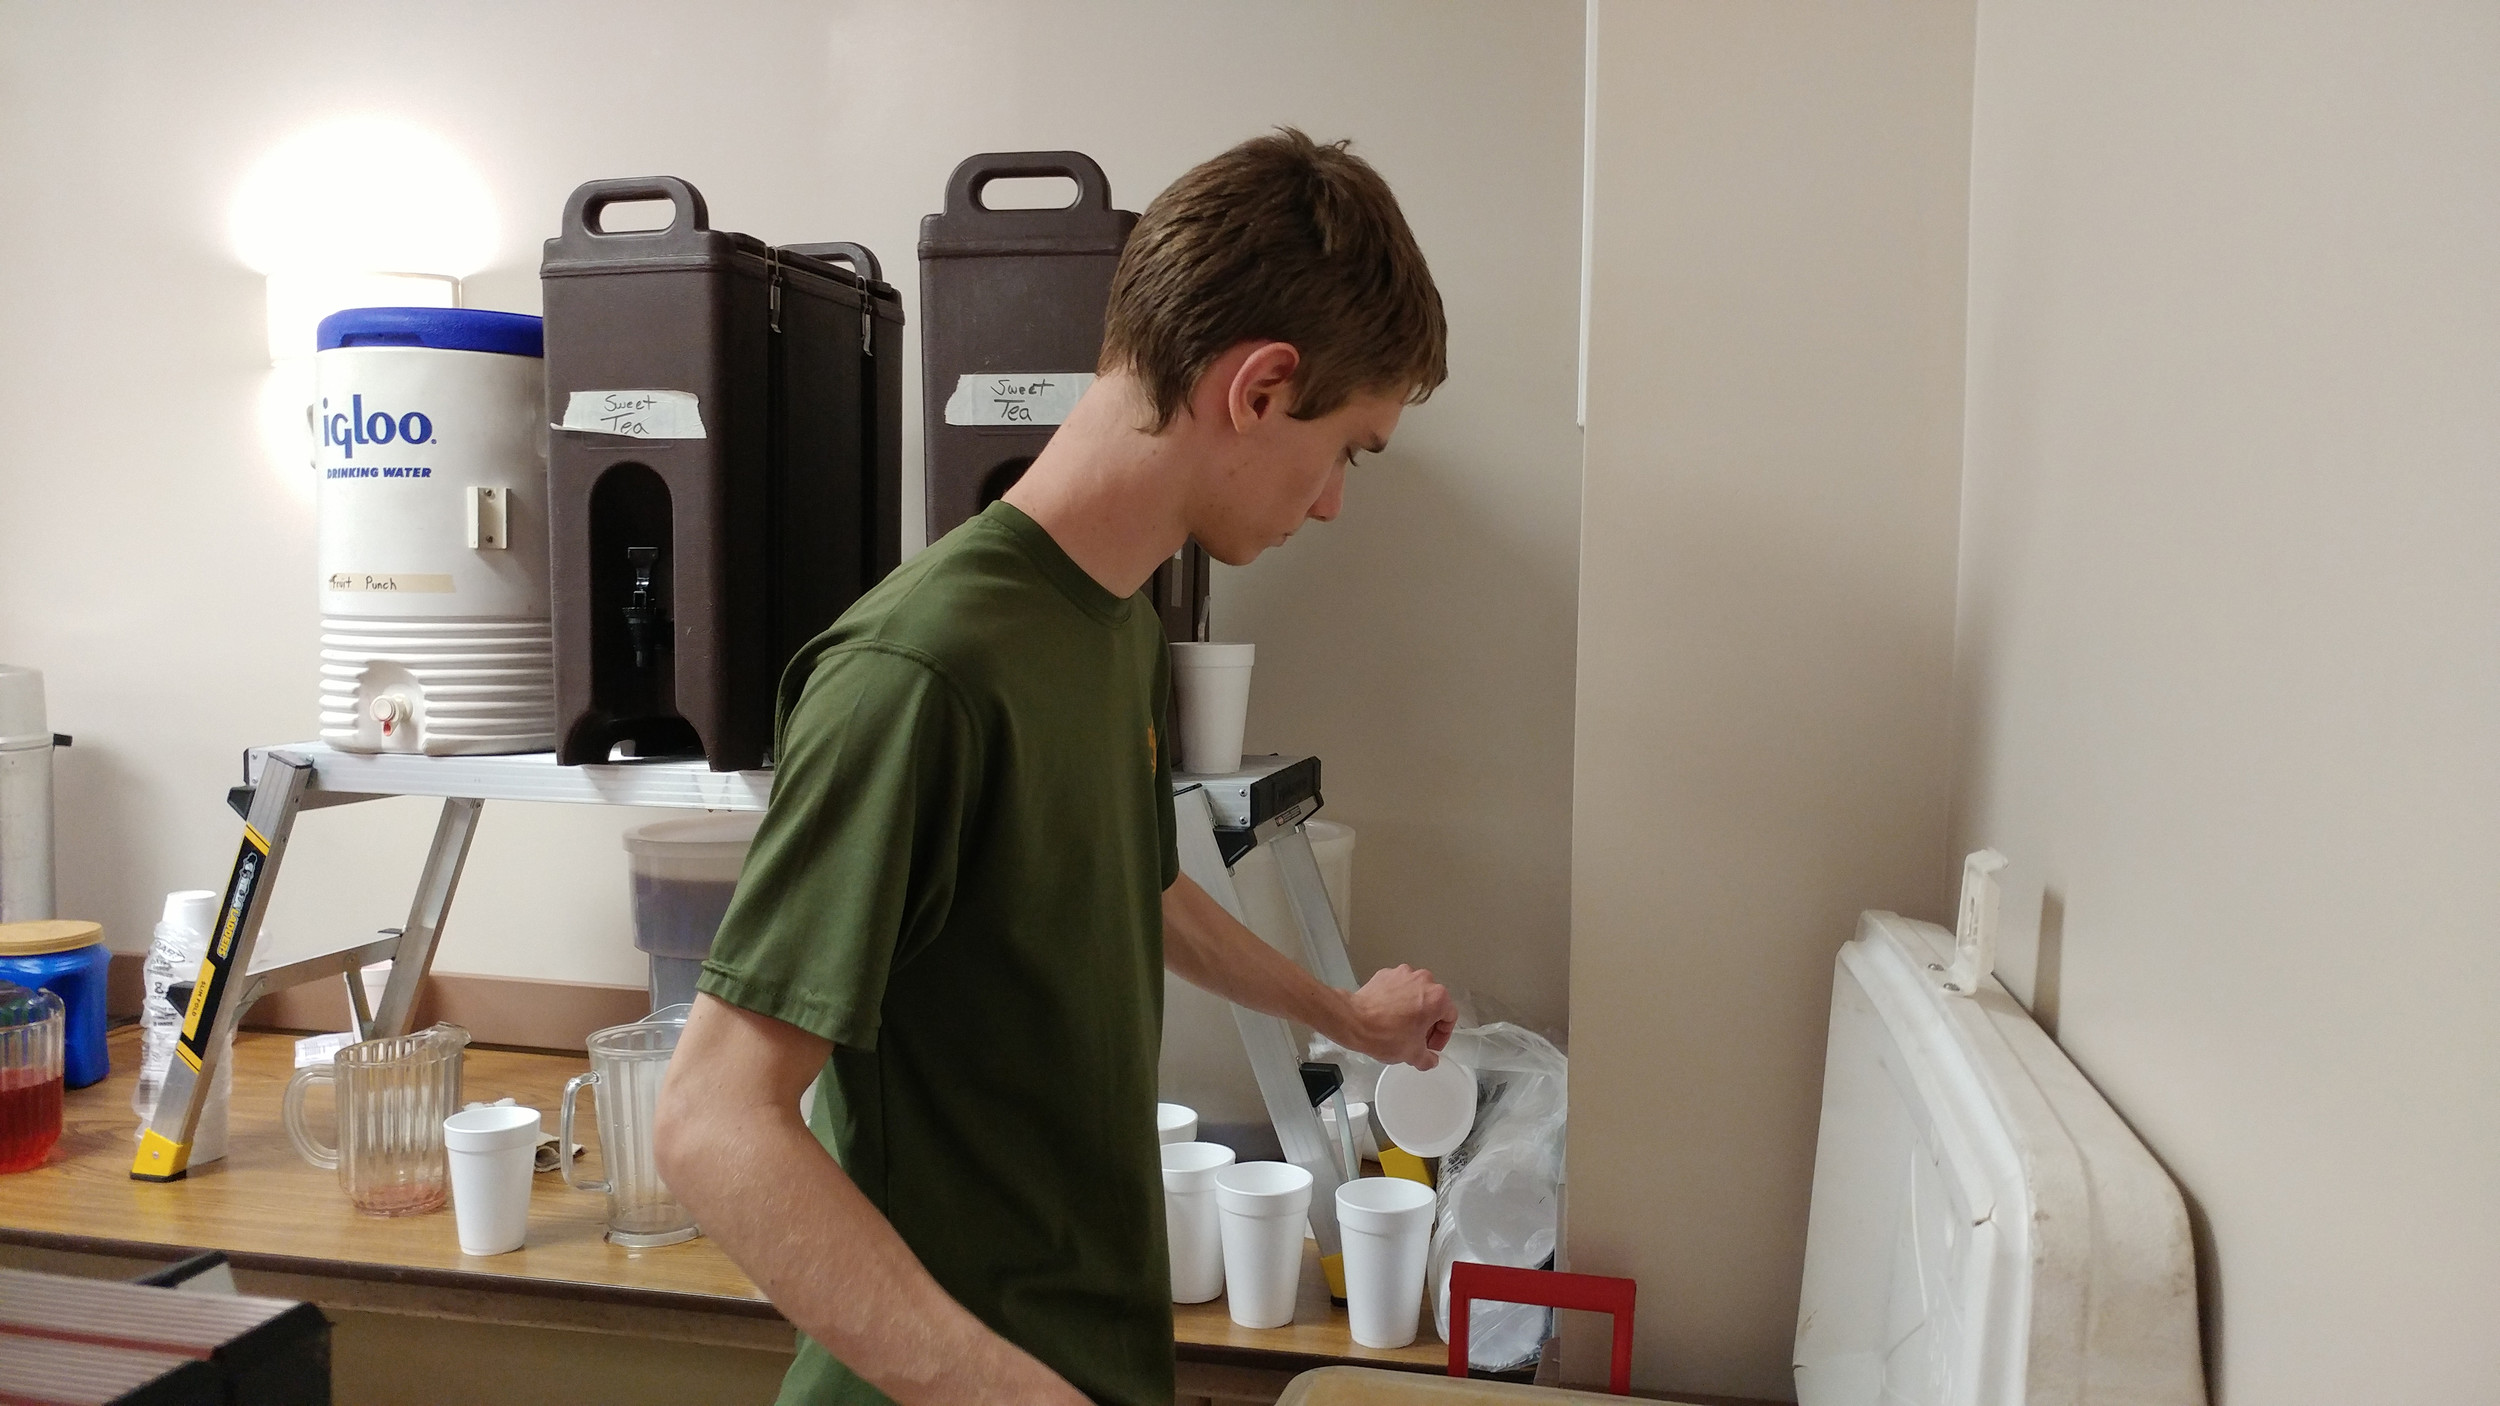 Boy Scout Brady Neithercoat of Troop 97 prepares ice and drinks for customers.